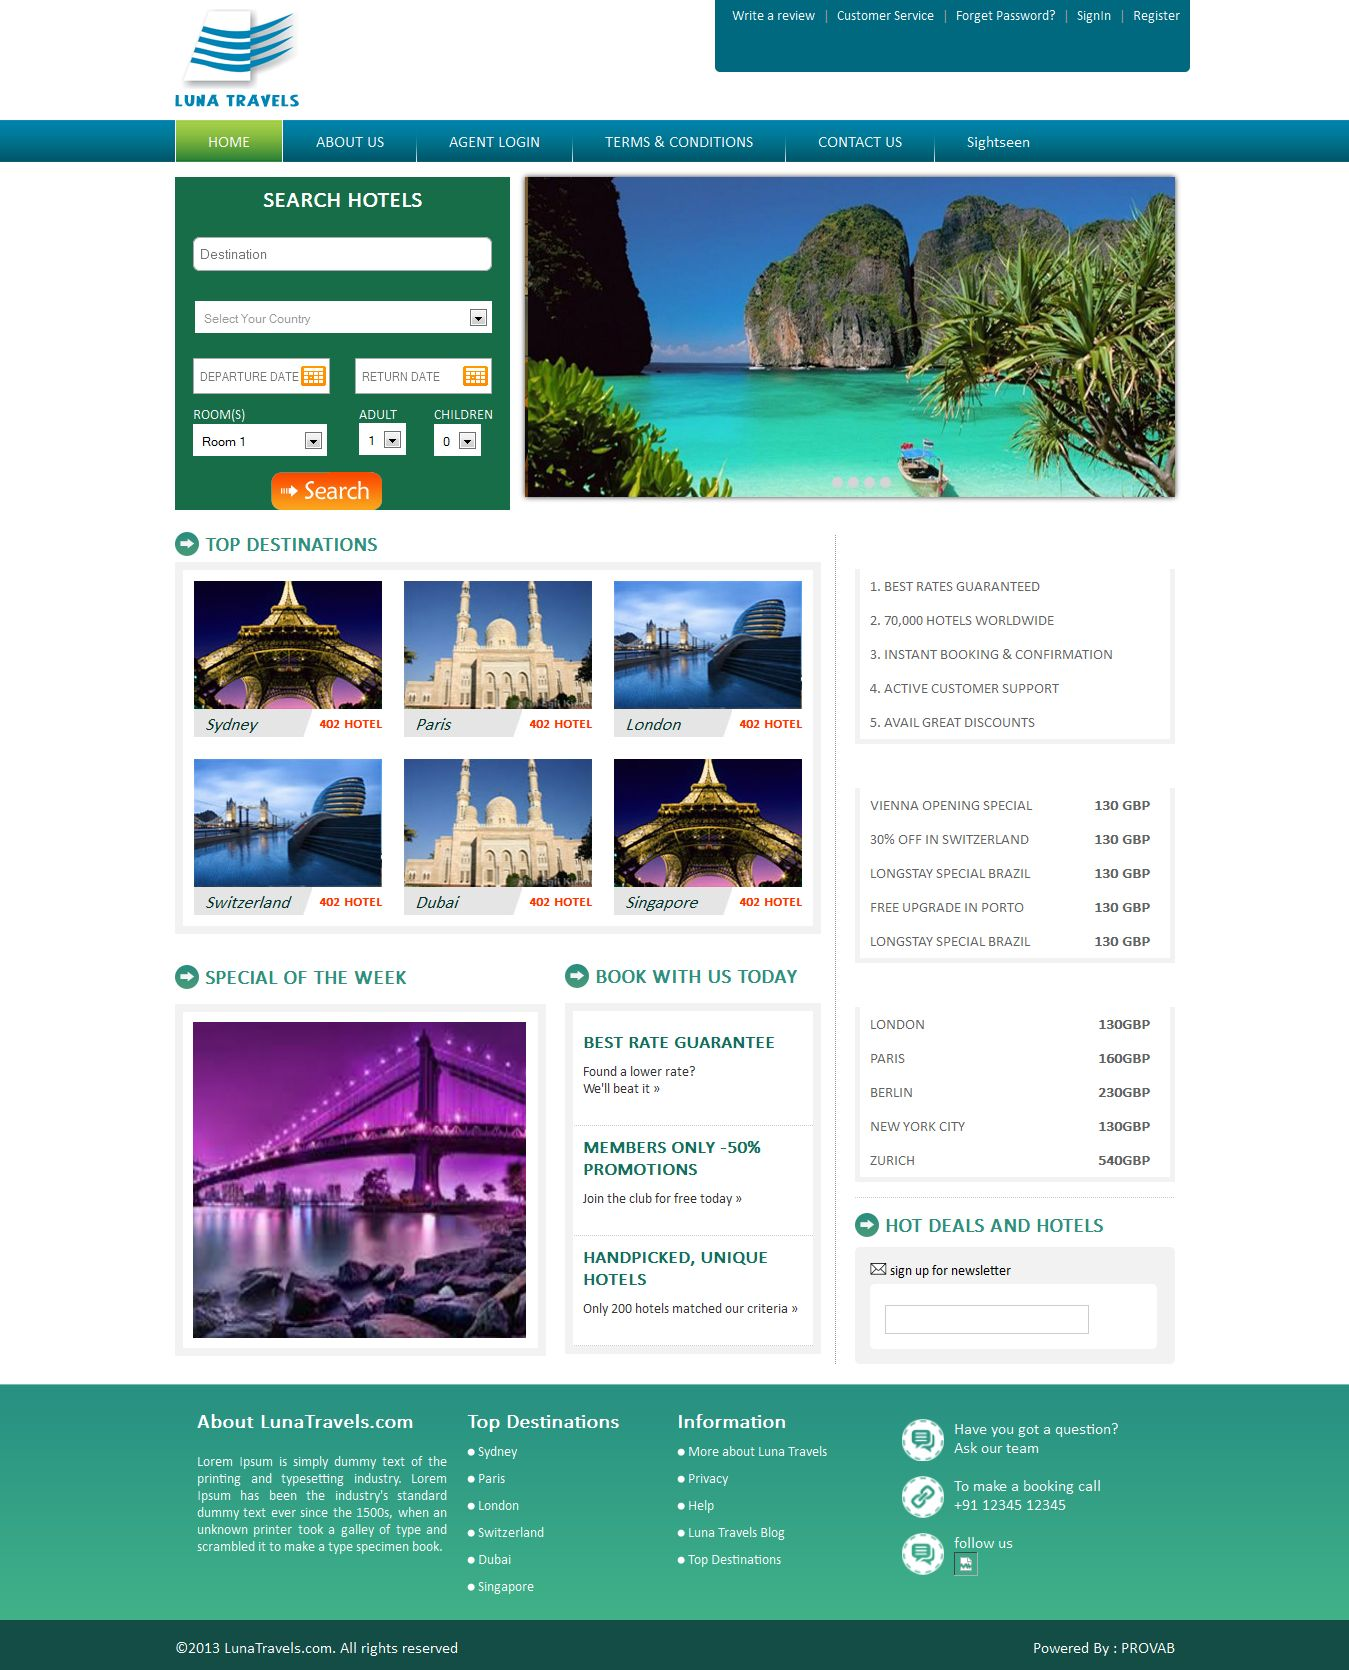 Why online hotel reservation system is a key component for